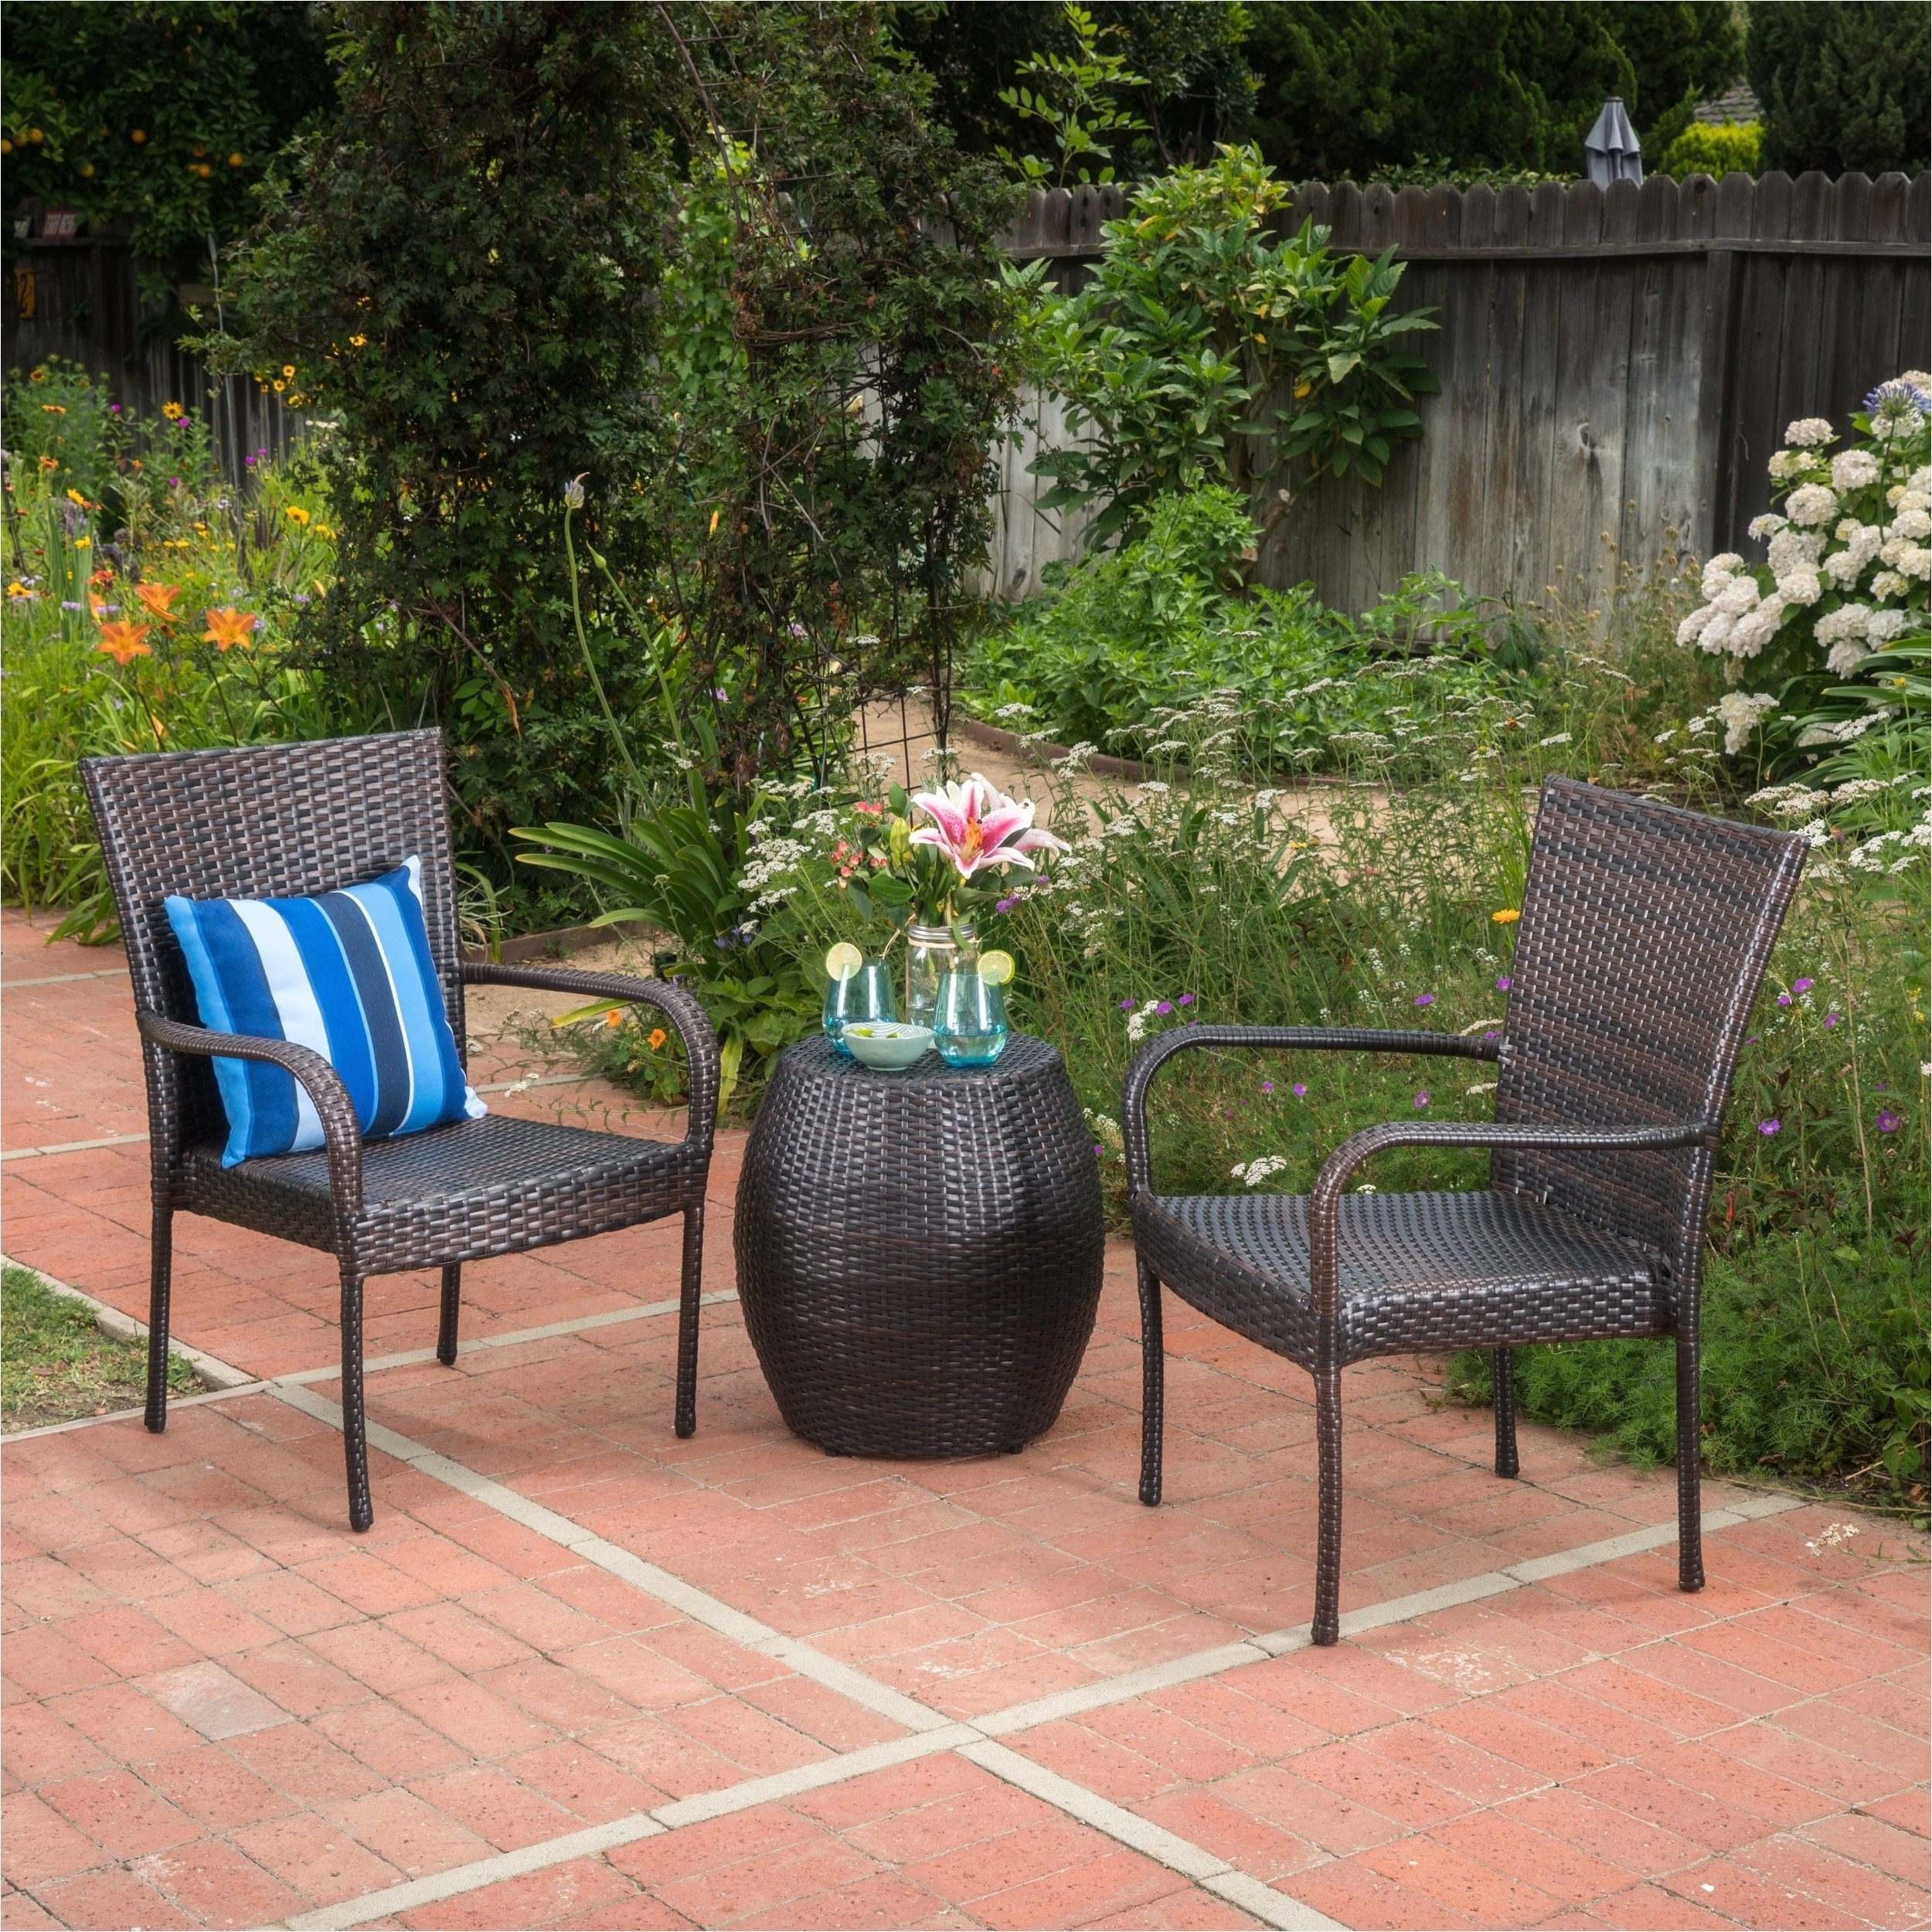 Patio Dining Sets Under 200 Elegant Conversation Sets Patio Pertaining To Most Current Patio Conversation Sets Under  (View 14 of 20)